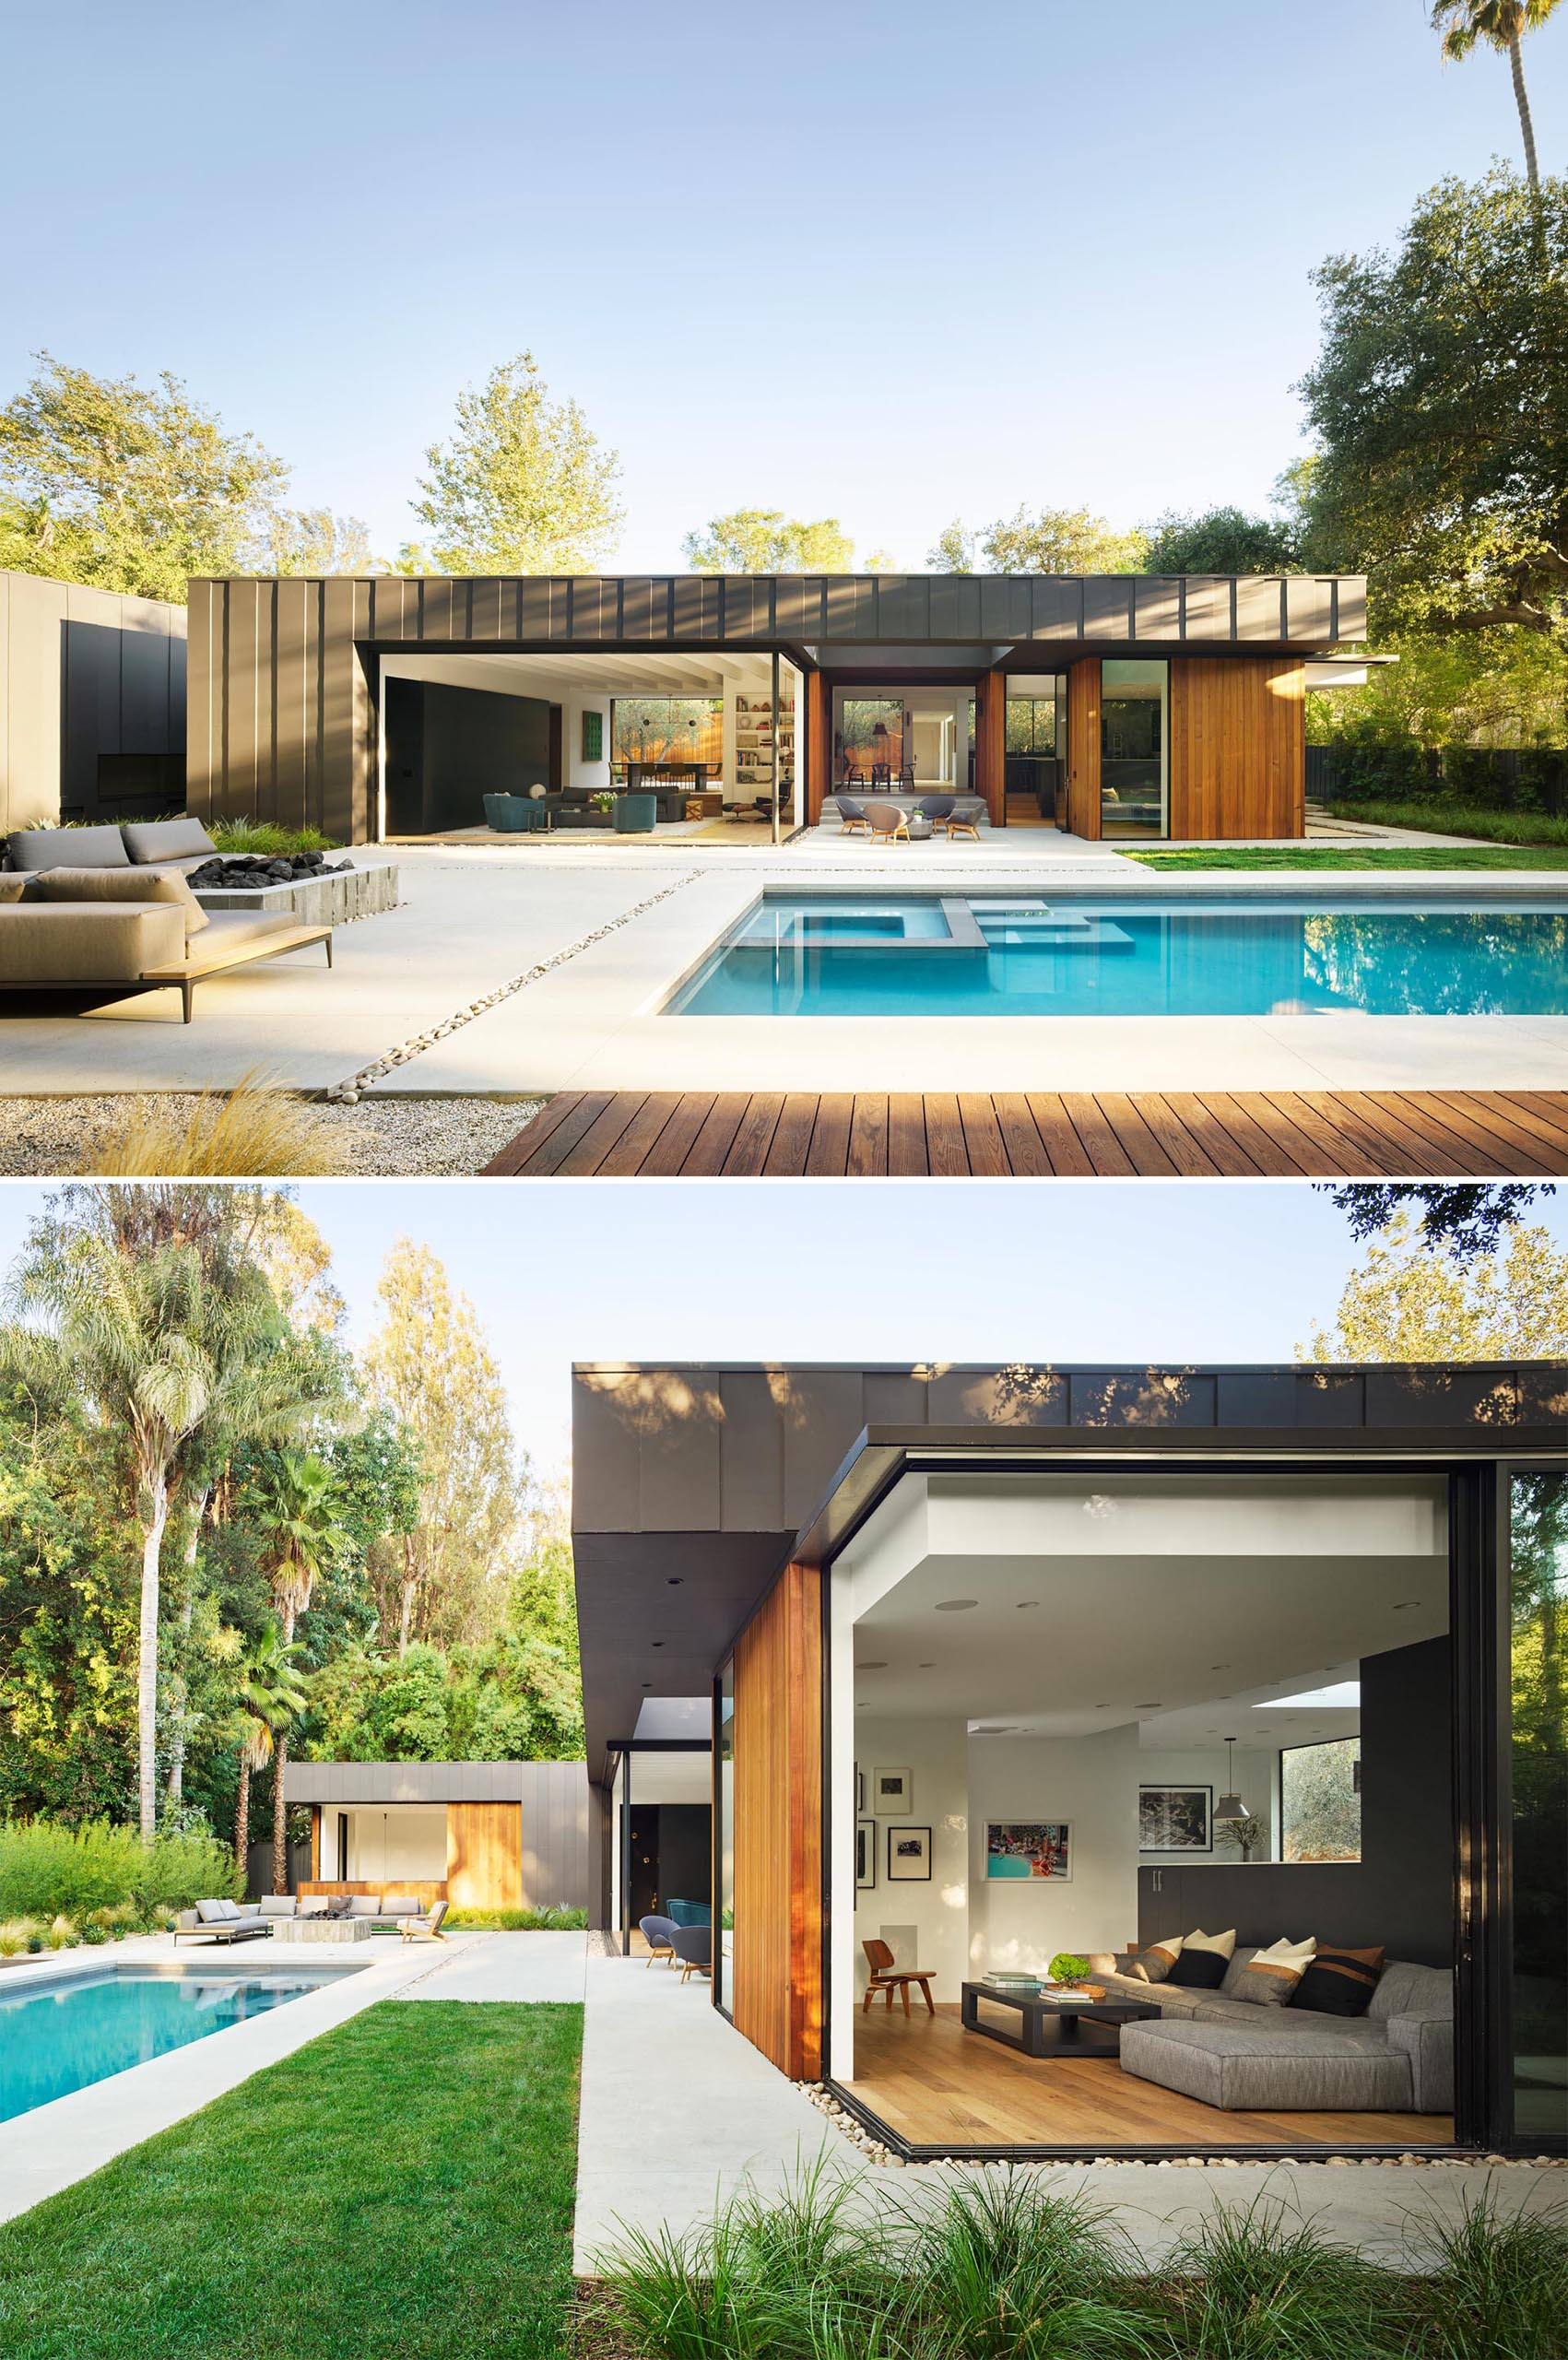 A modern house that opens up to the yard and swimming pool.